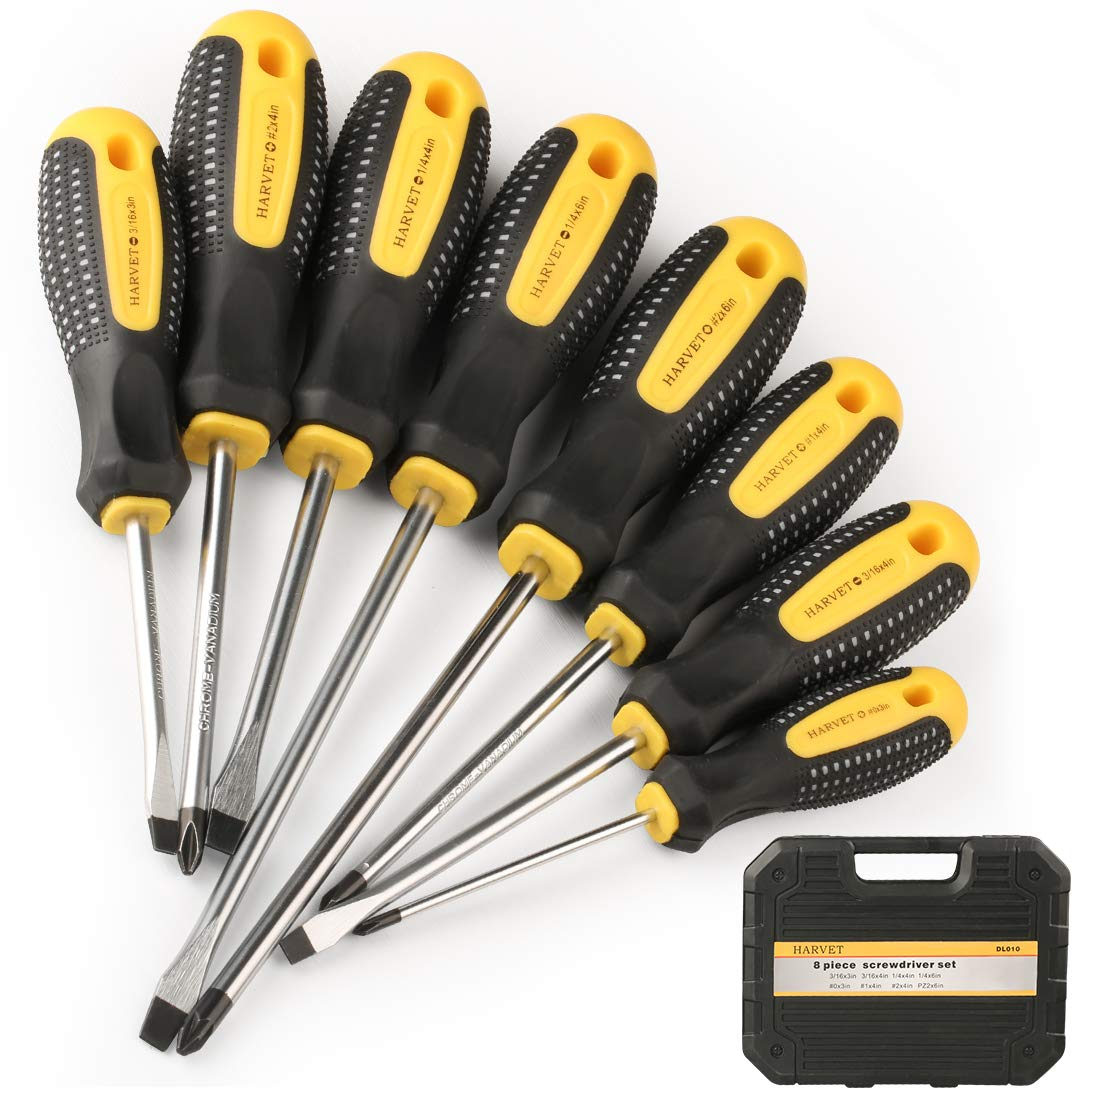 HARVET Professional 8PCS Magnetic Cushion Grip Screwdriver Set with Case, Slotted and Phillips Tips, Repair Toolkit For Wet, Oily Hand Work by HARVET